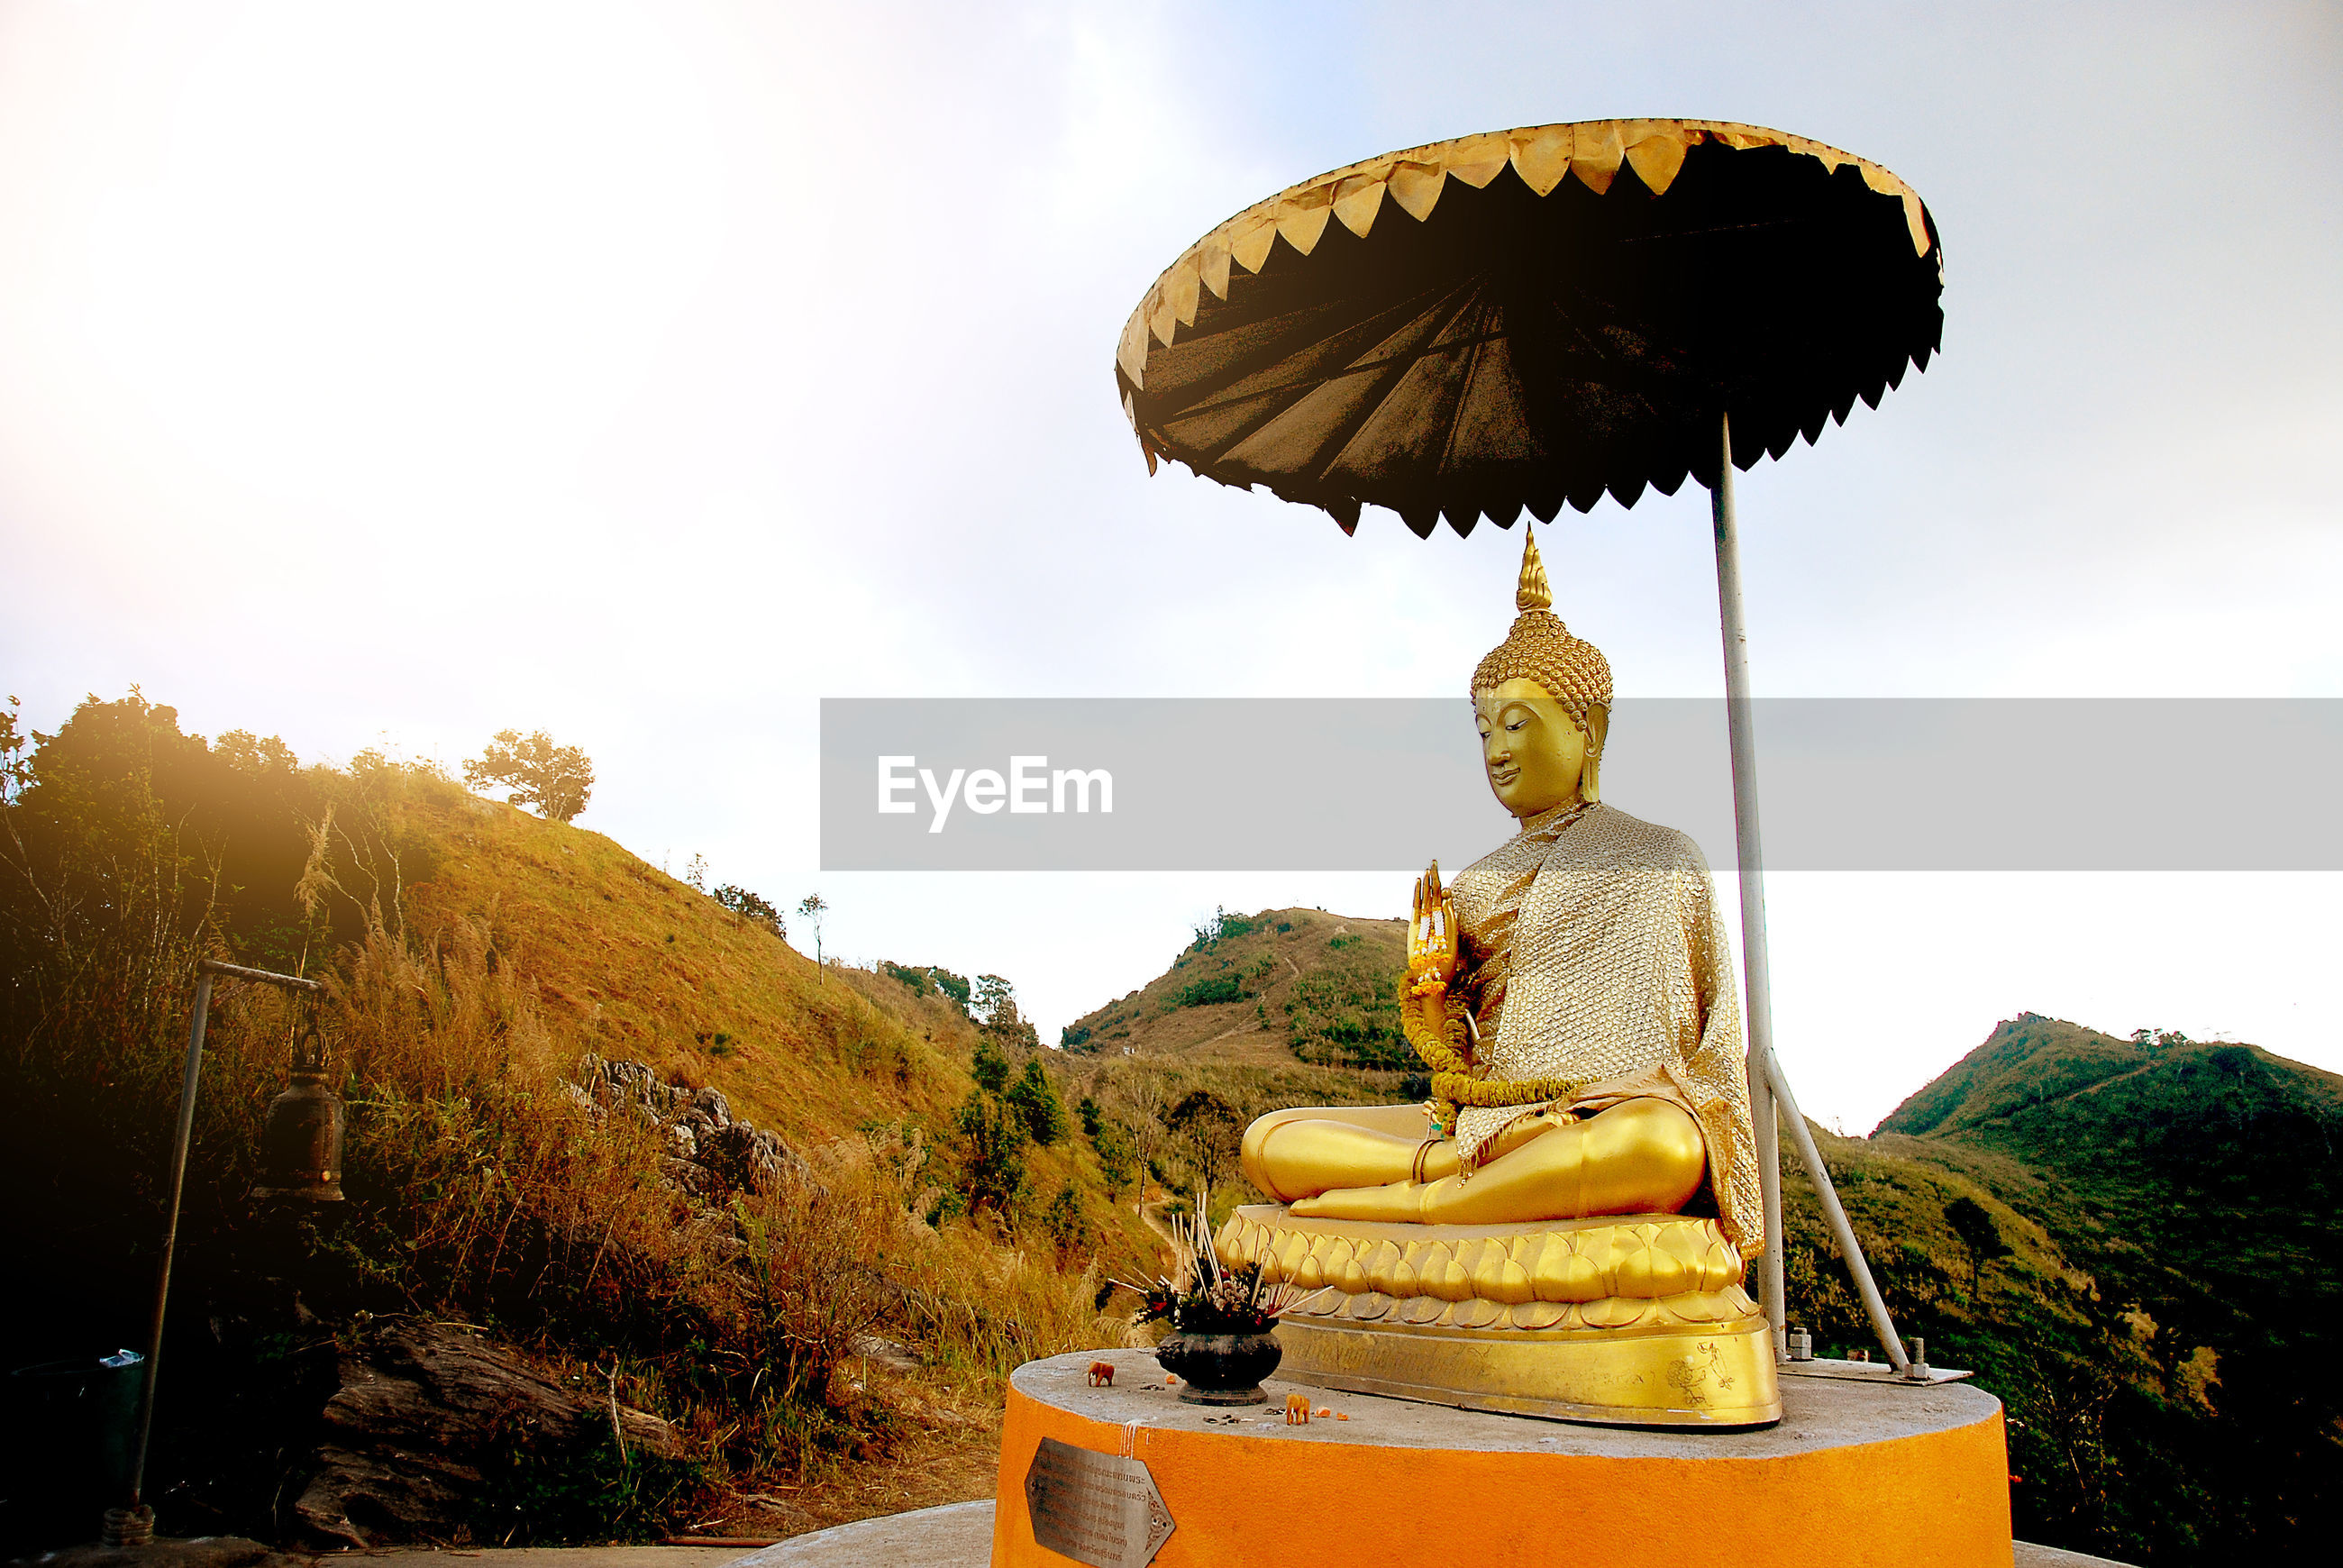 religion, statue, gold colored, no people, gold, idol, outdoors, sculpture, sky, nature, day